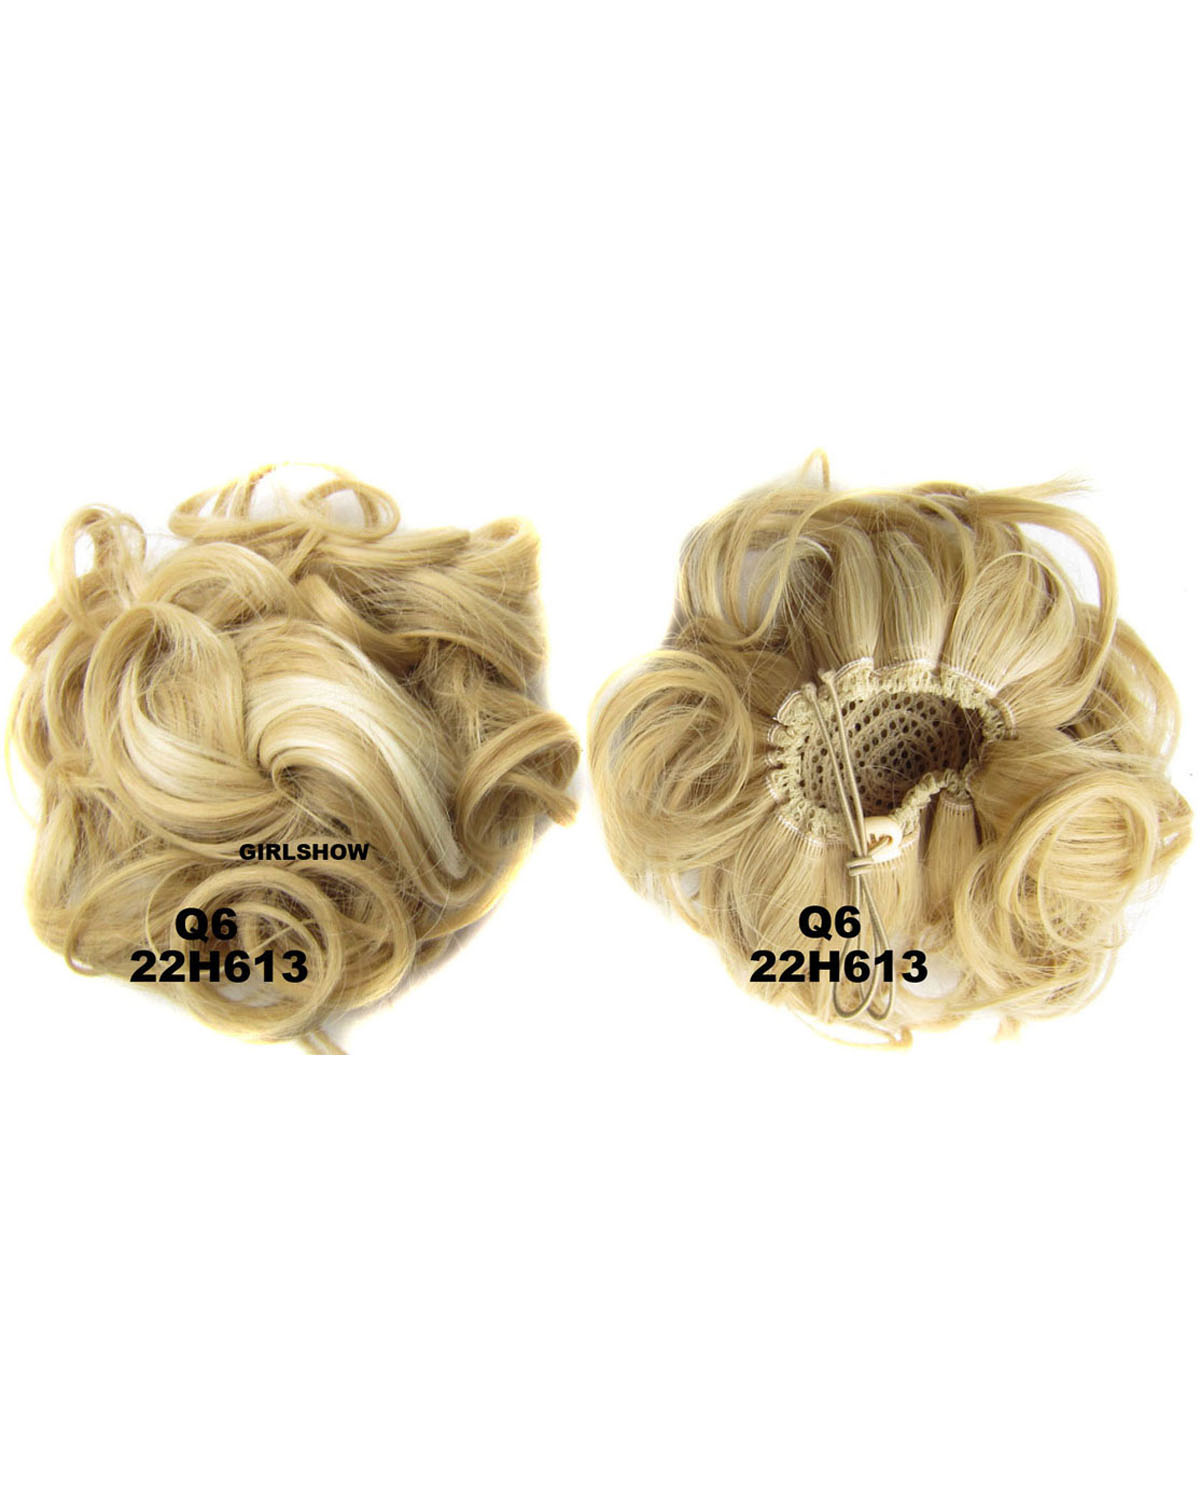 Ladies Great and Clean Curly and Short Hair Buns Drawstring Synthetic Hair Extension Bride Scrunchies 22H613